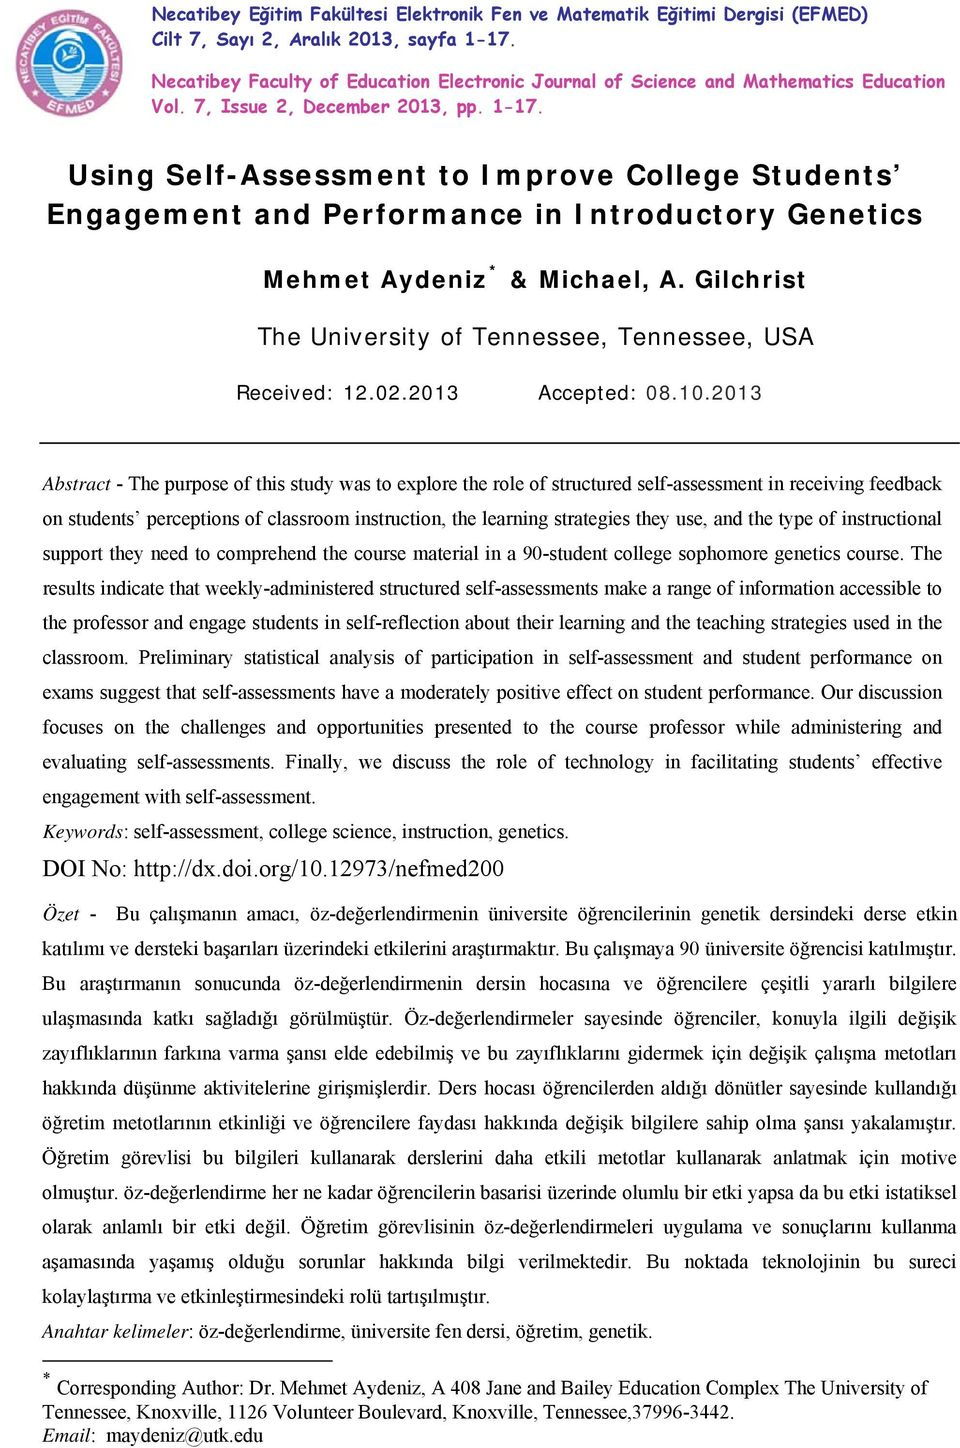 Using Self-Assessment to Improve College Students Engagement and Performance in Introductory Genetics Mehmet Aydeniz * & Michael, A. Gilchrist The University of Tennessee, Tennessee, USA Received: 12.